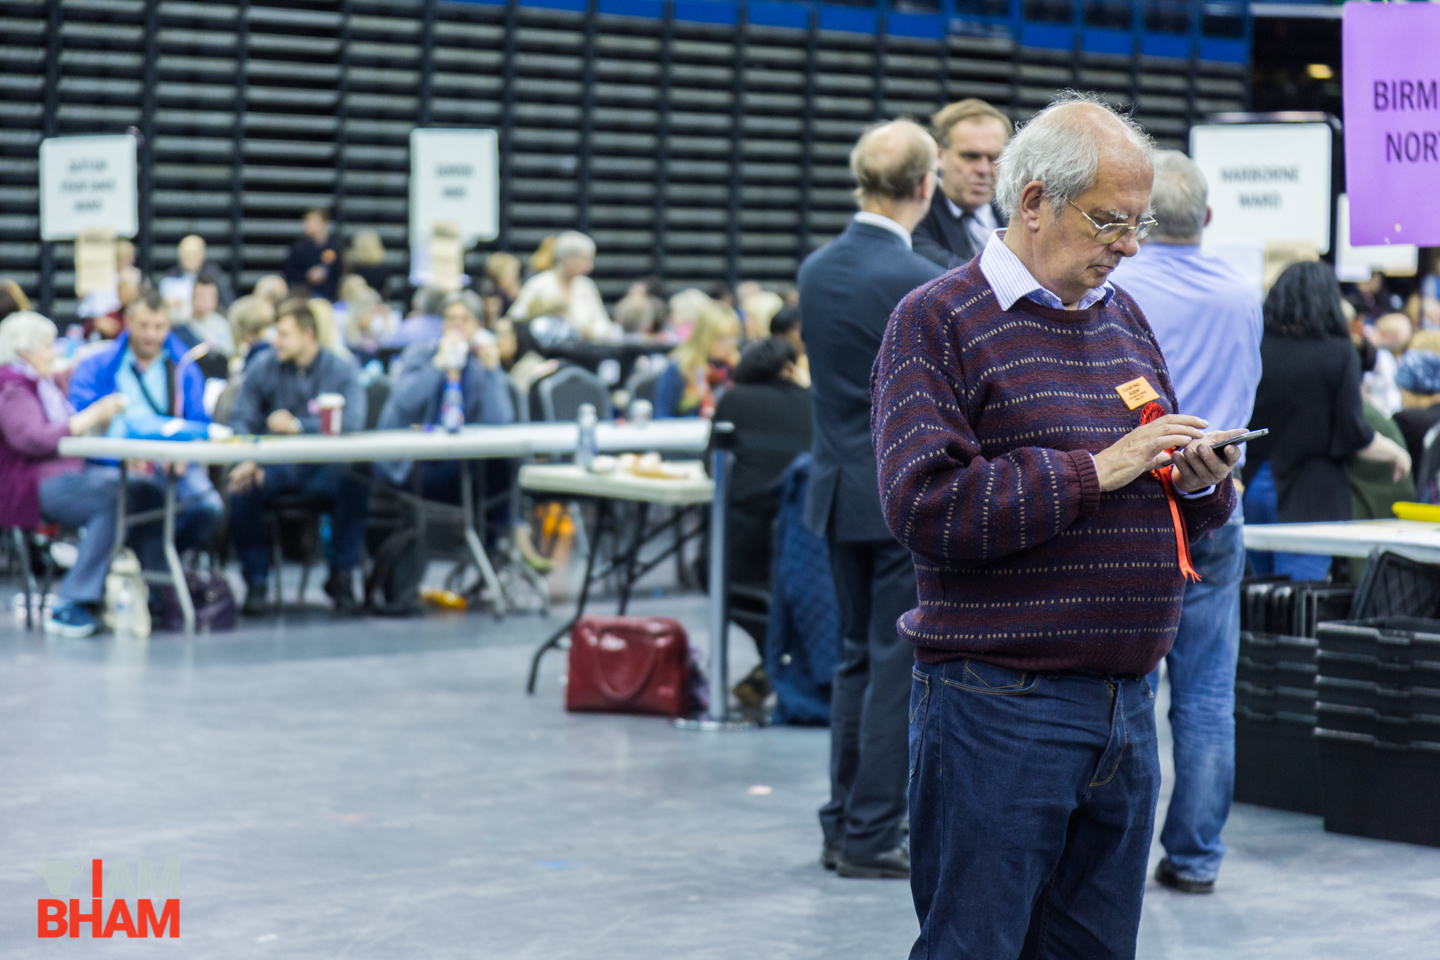 A Labour supporter checks his phone at the West Midlands Mayoral Election vote count in Birmingham